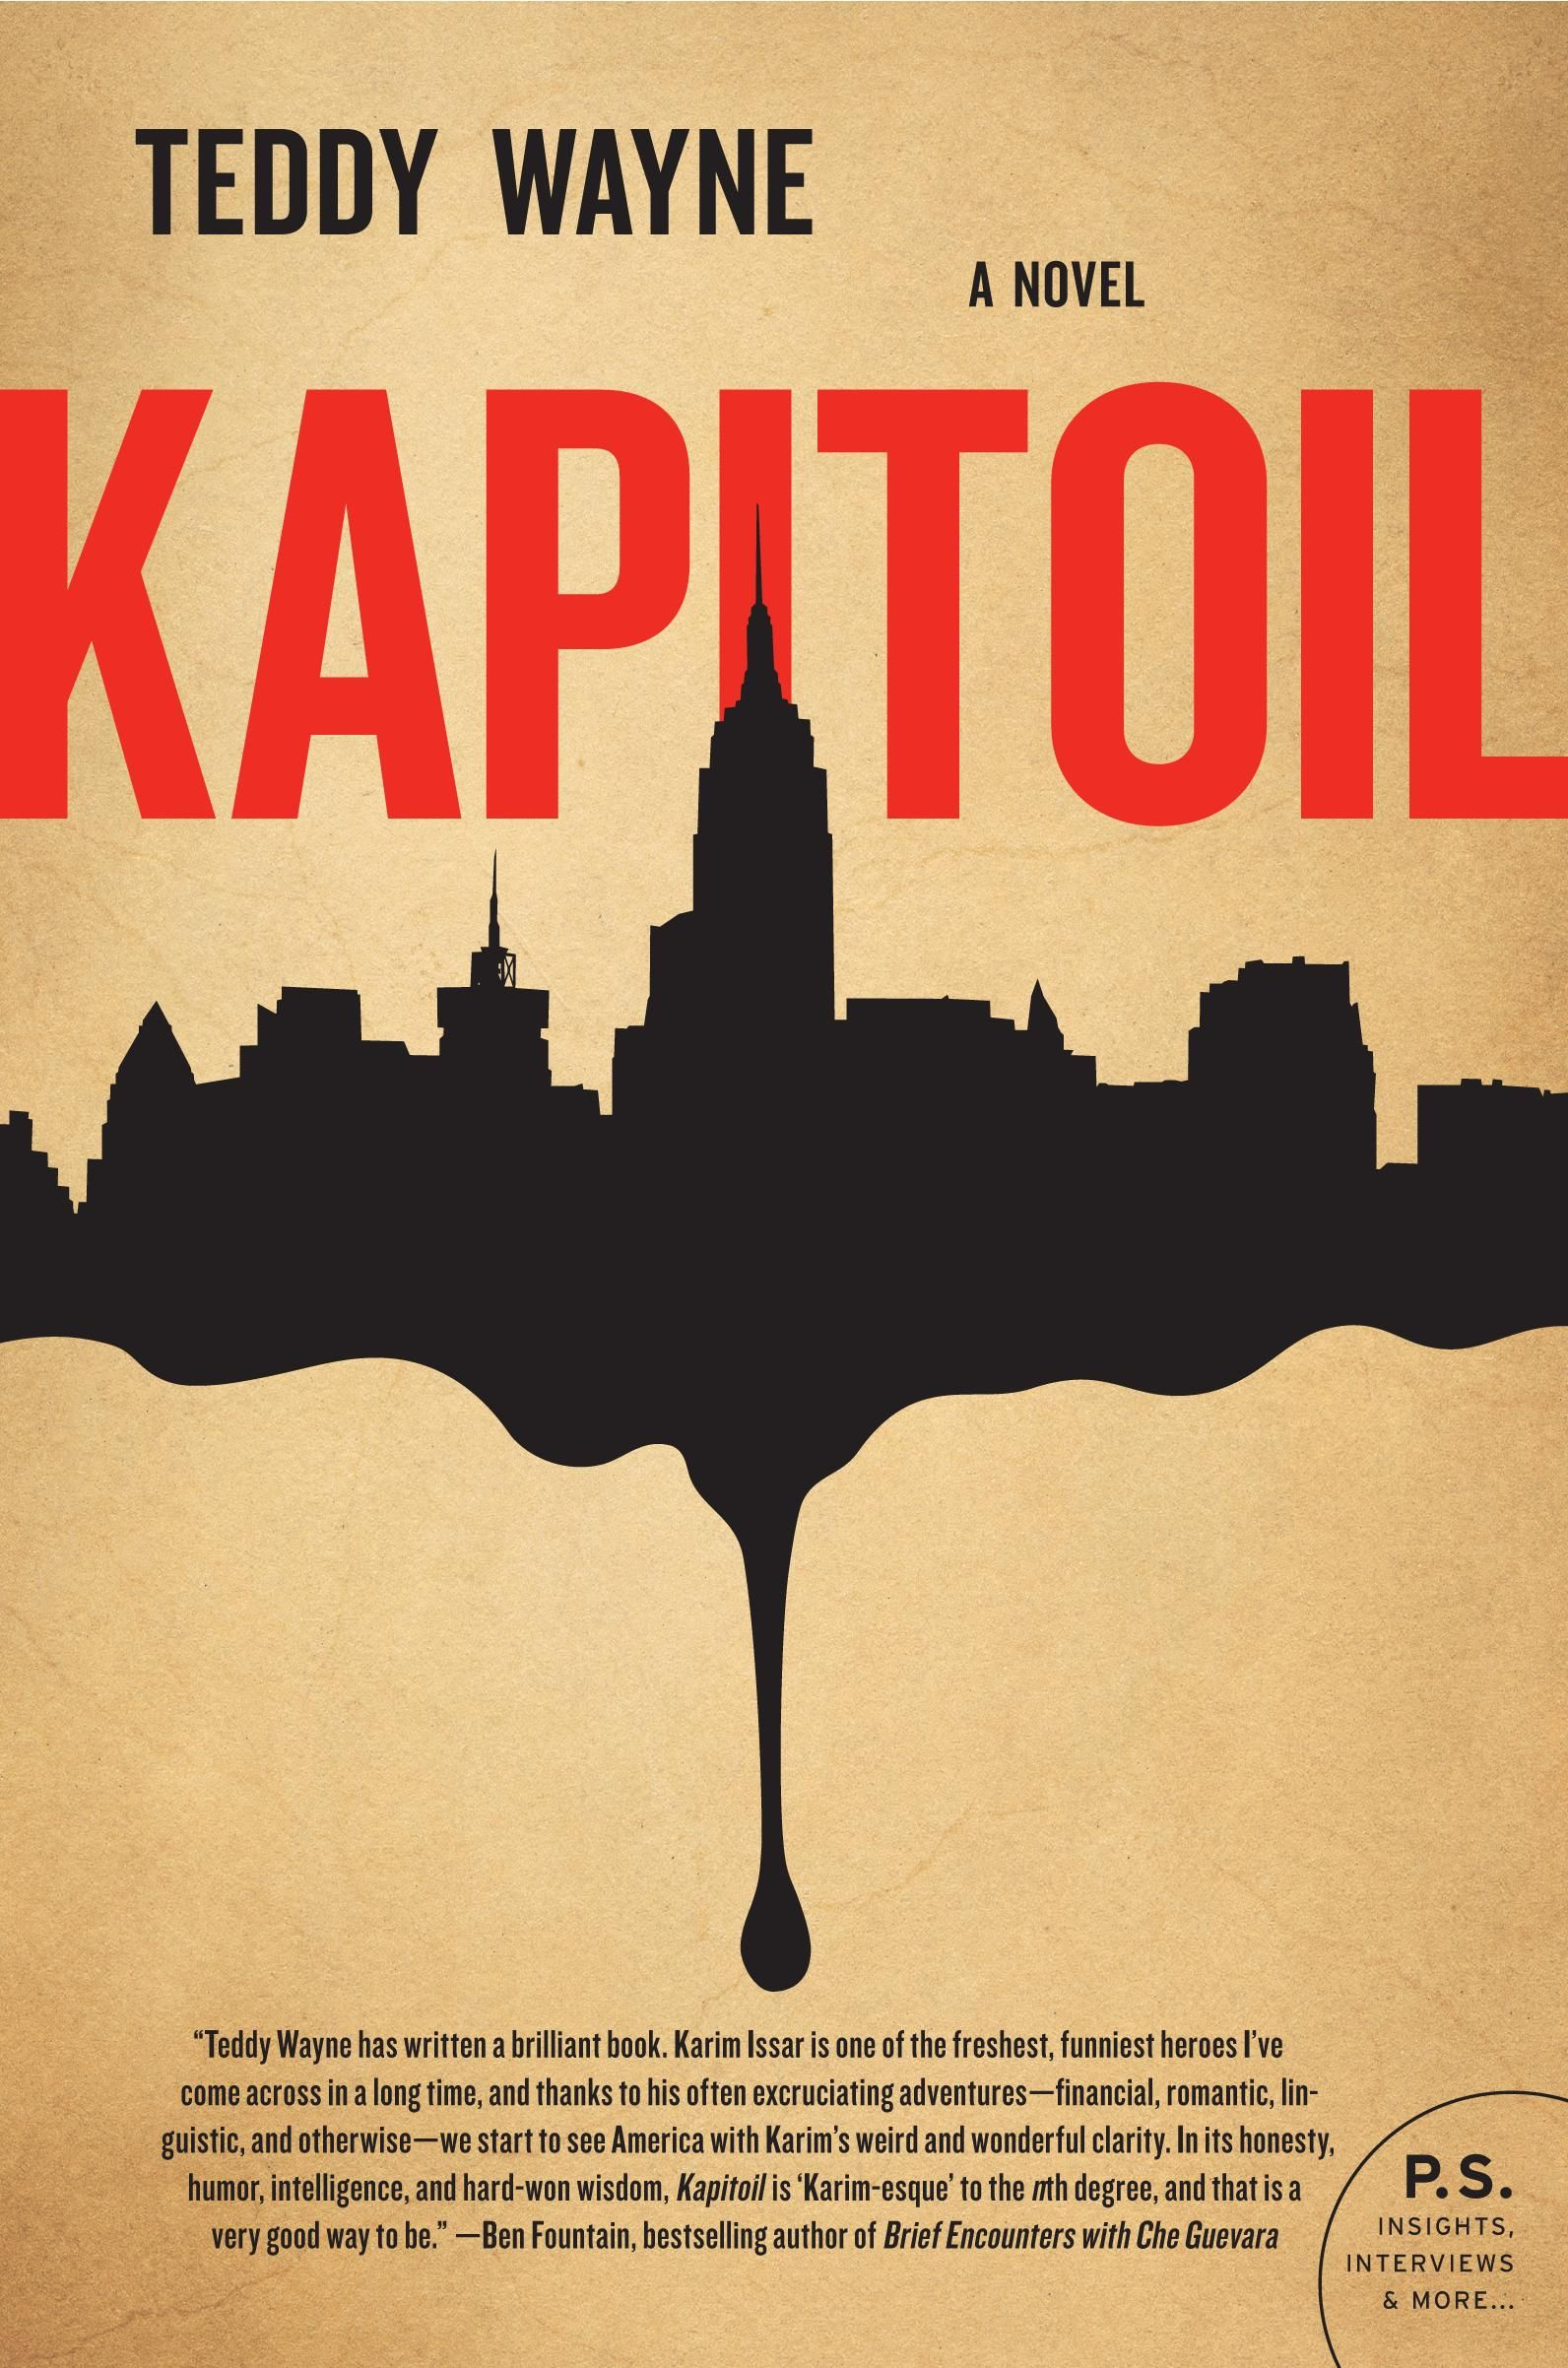 Kapitoil: Teddy Wayne?s debut novel.